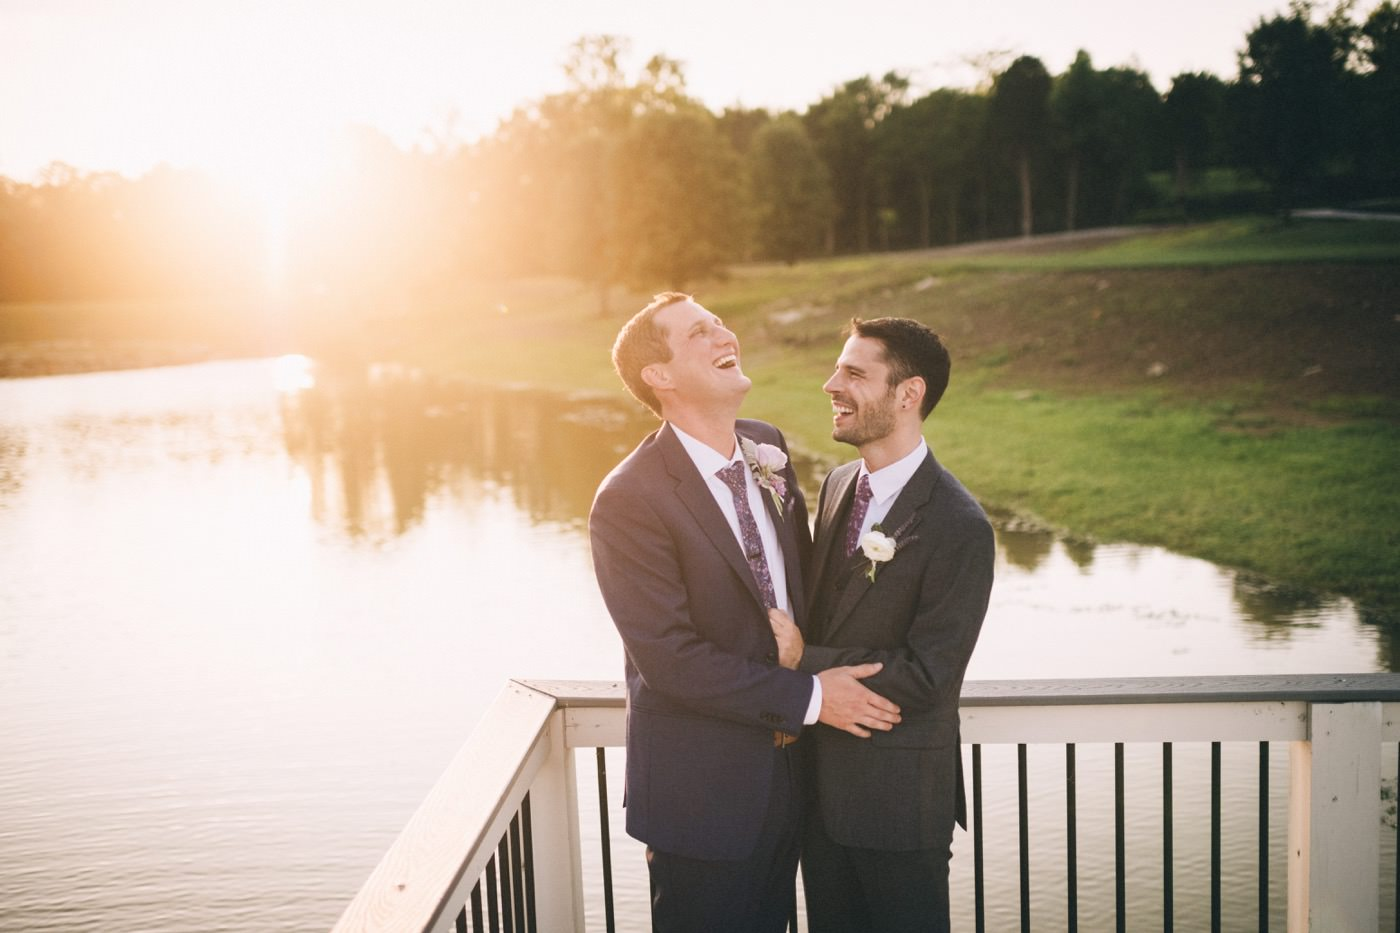 Will-Nate-Louisville-LGBTQ-Pride-Month-Kentucky-Wedding-By-Sarah-Katherine-Davis-Photograpy0058.JPG